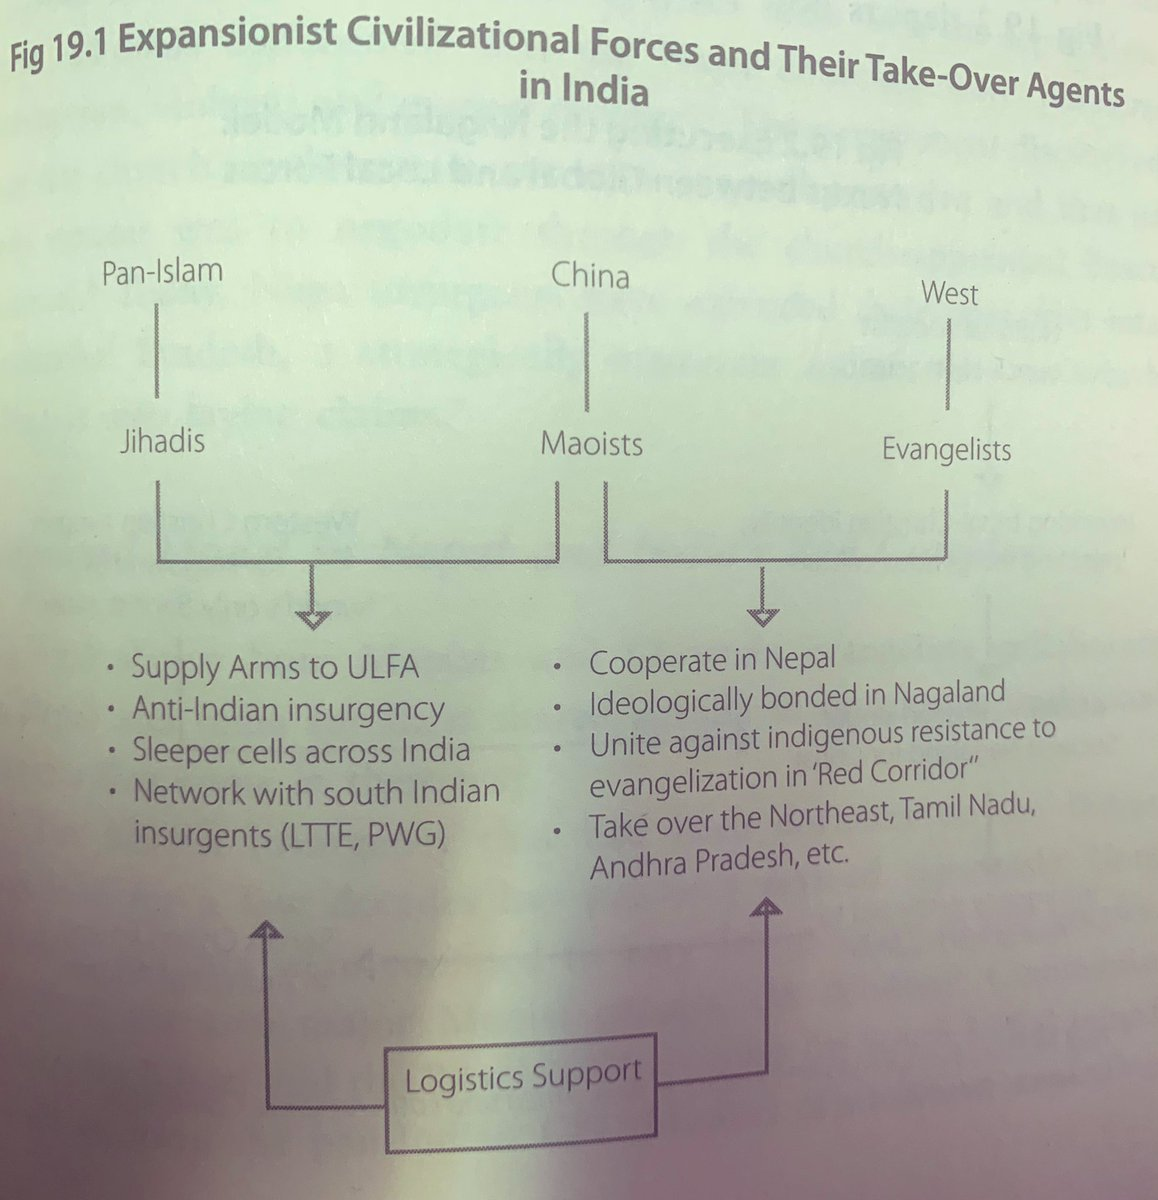 'Breaking India' book by @RajivMessage ji is personally an eye opener for me. I wasn't aware about Evangelical forces trying to break India. US, UK, Australia & European countries have been on it since 1960s. I don't foresee any action by GoI in near future. @InfinityMessage